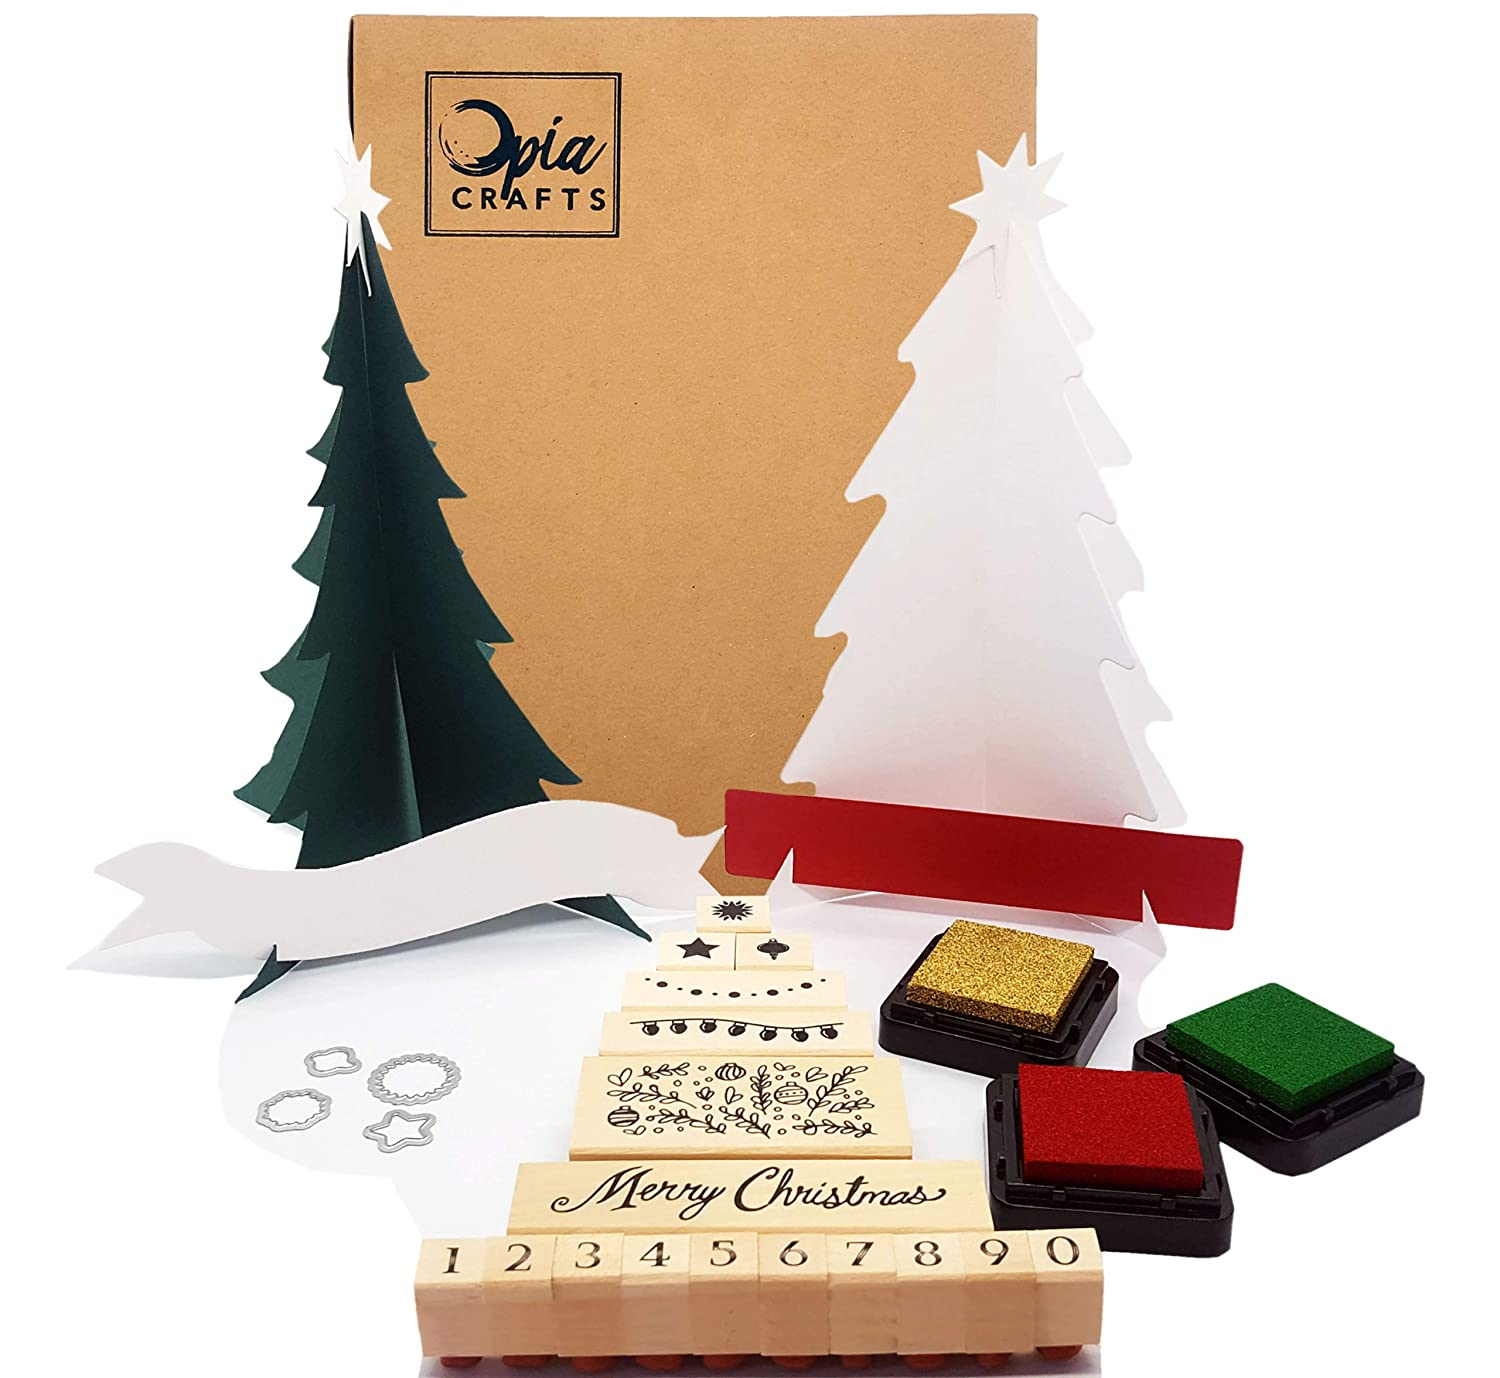 Forum on this topic: Holiday Crafts: Rubber Stamp Decorations, holiday-crafts-rubber-stamp-decorations/